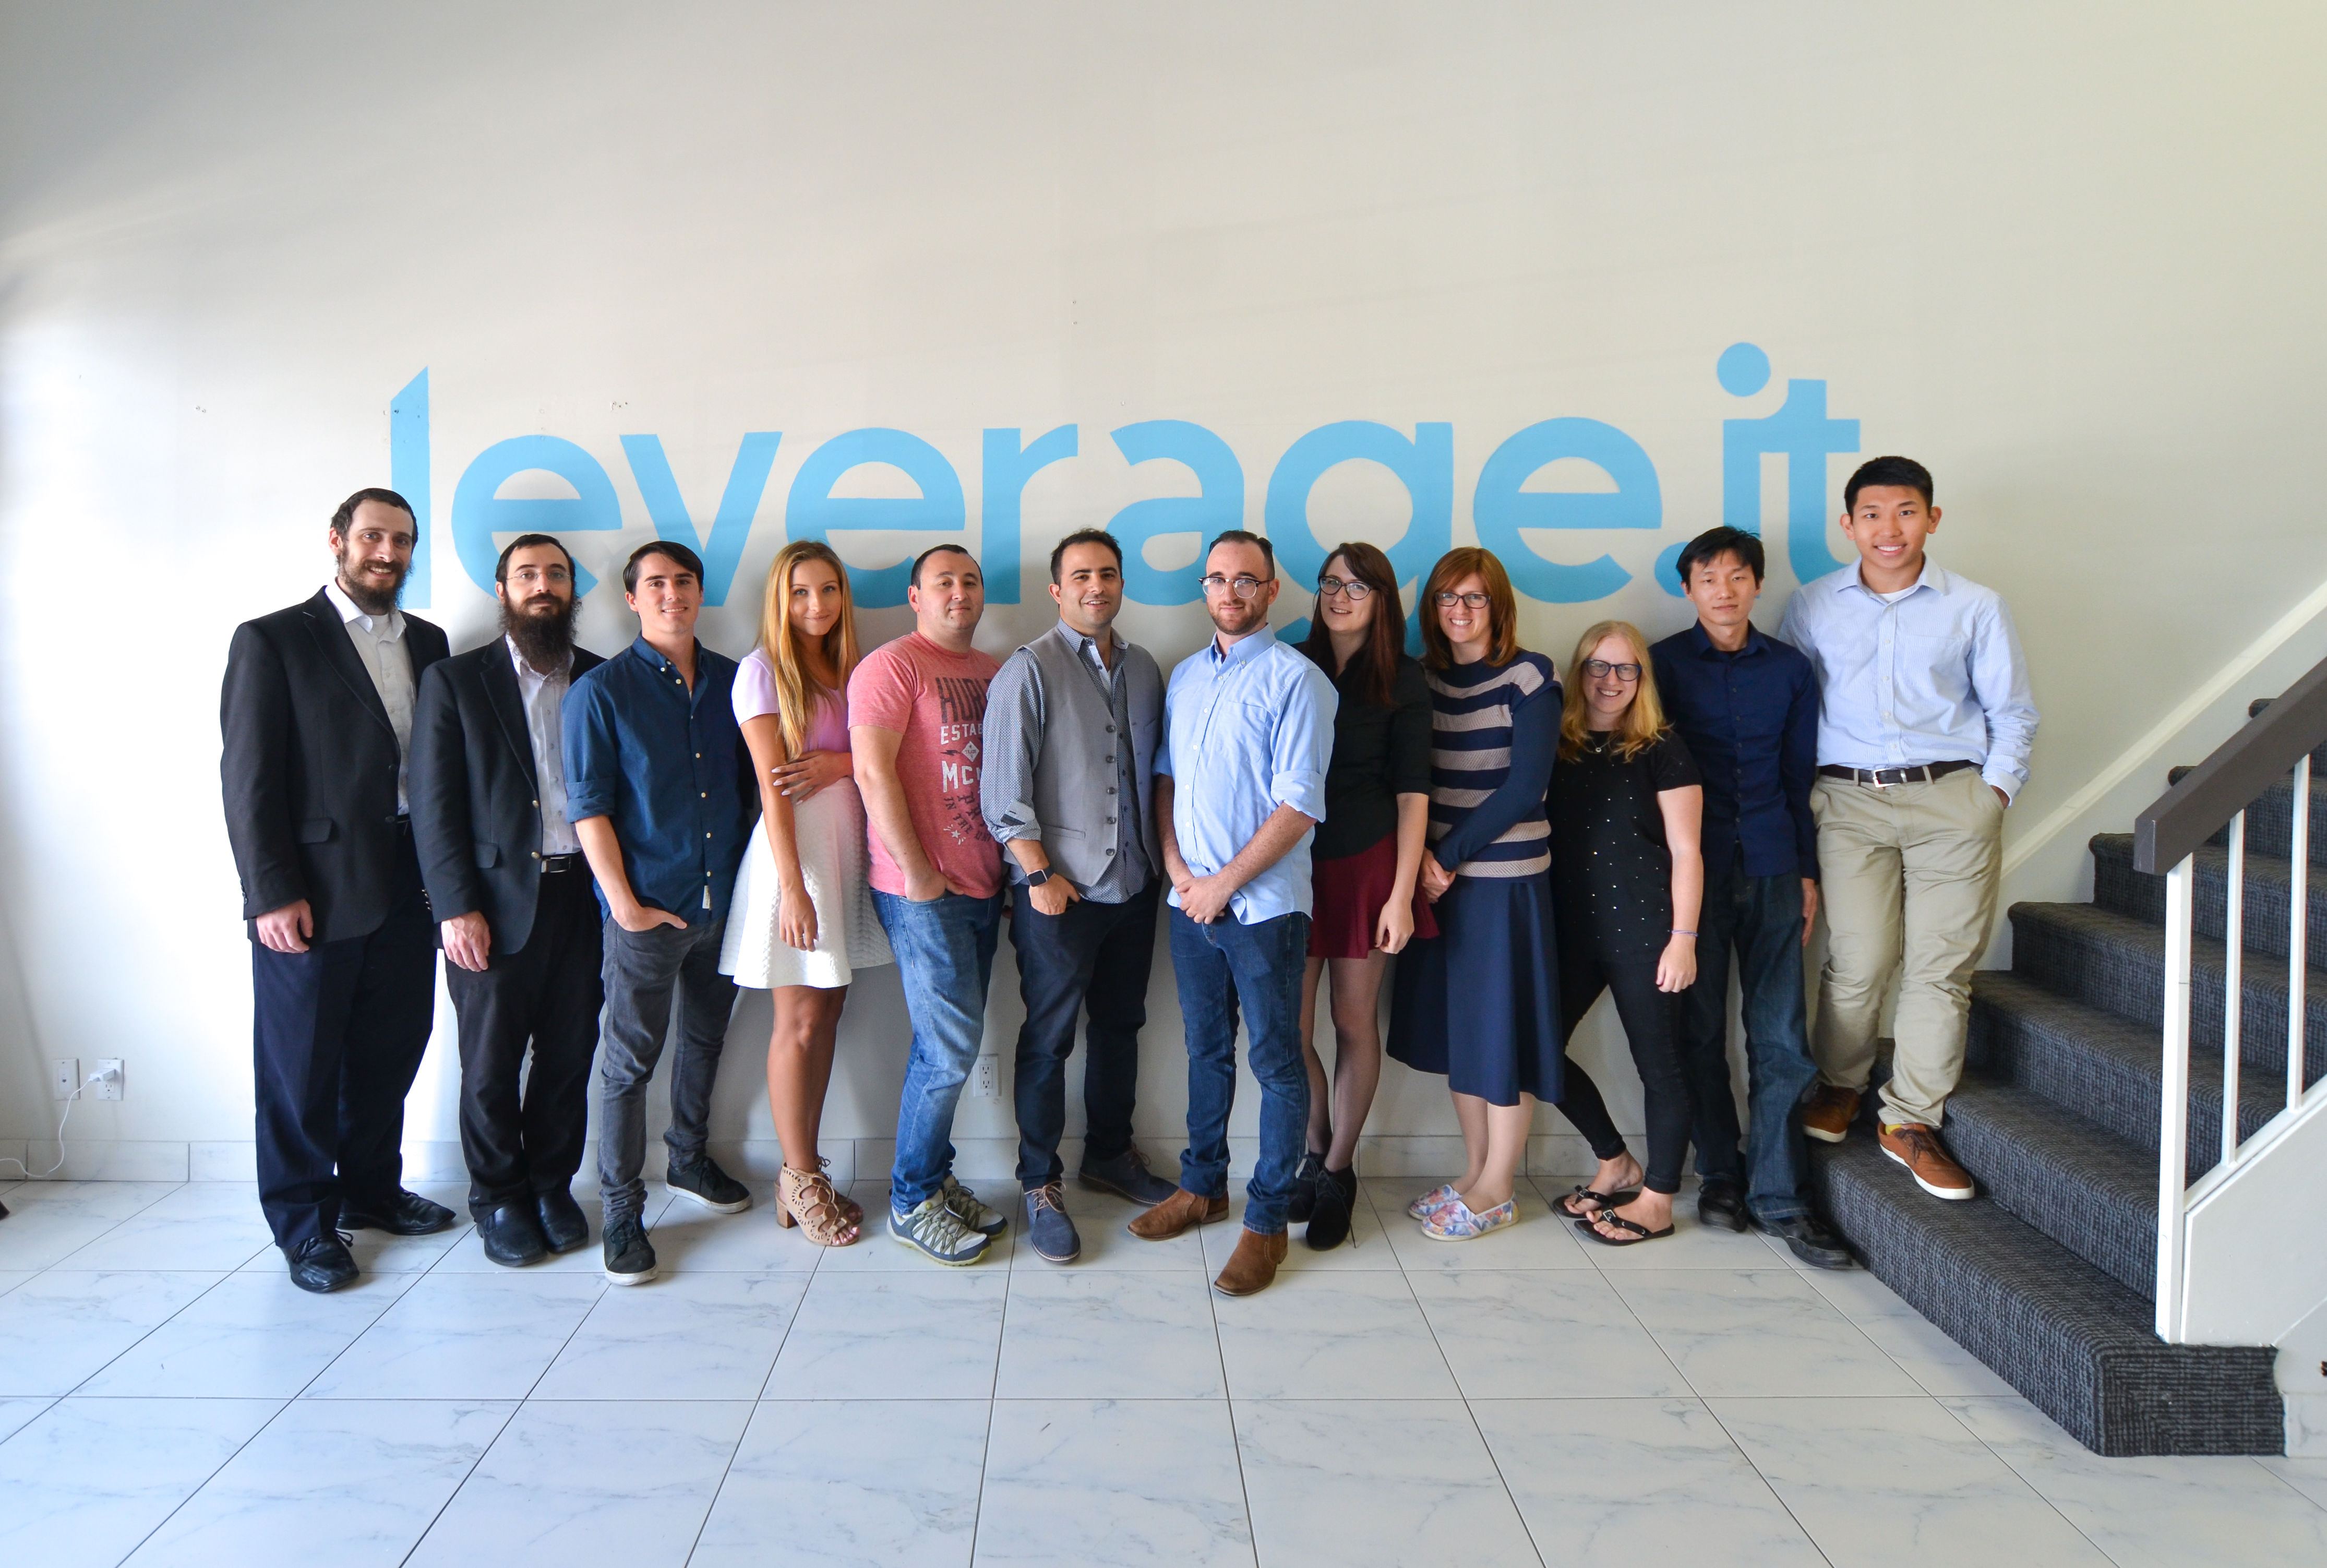 Leverage It team group photo